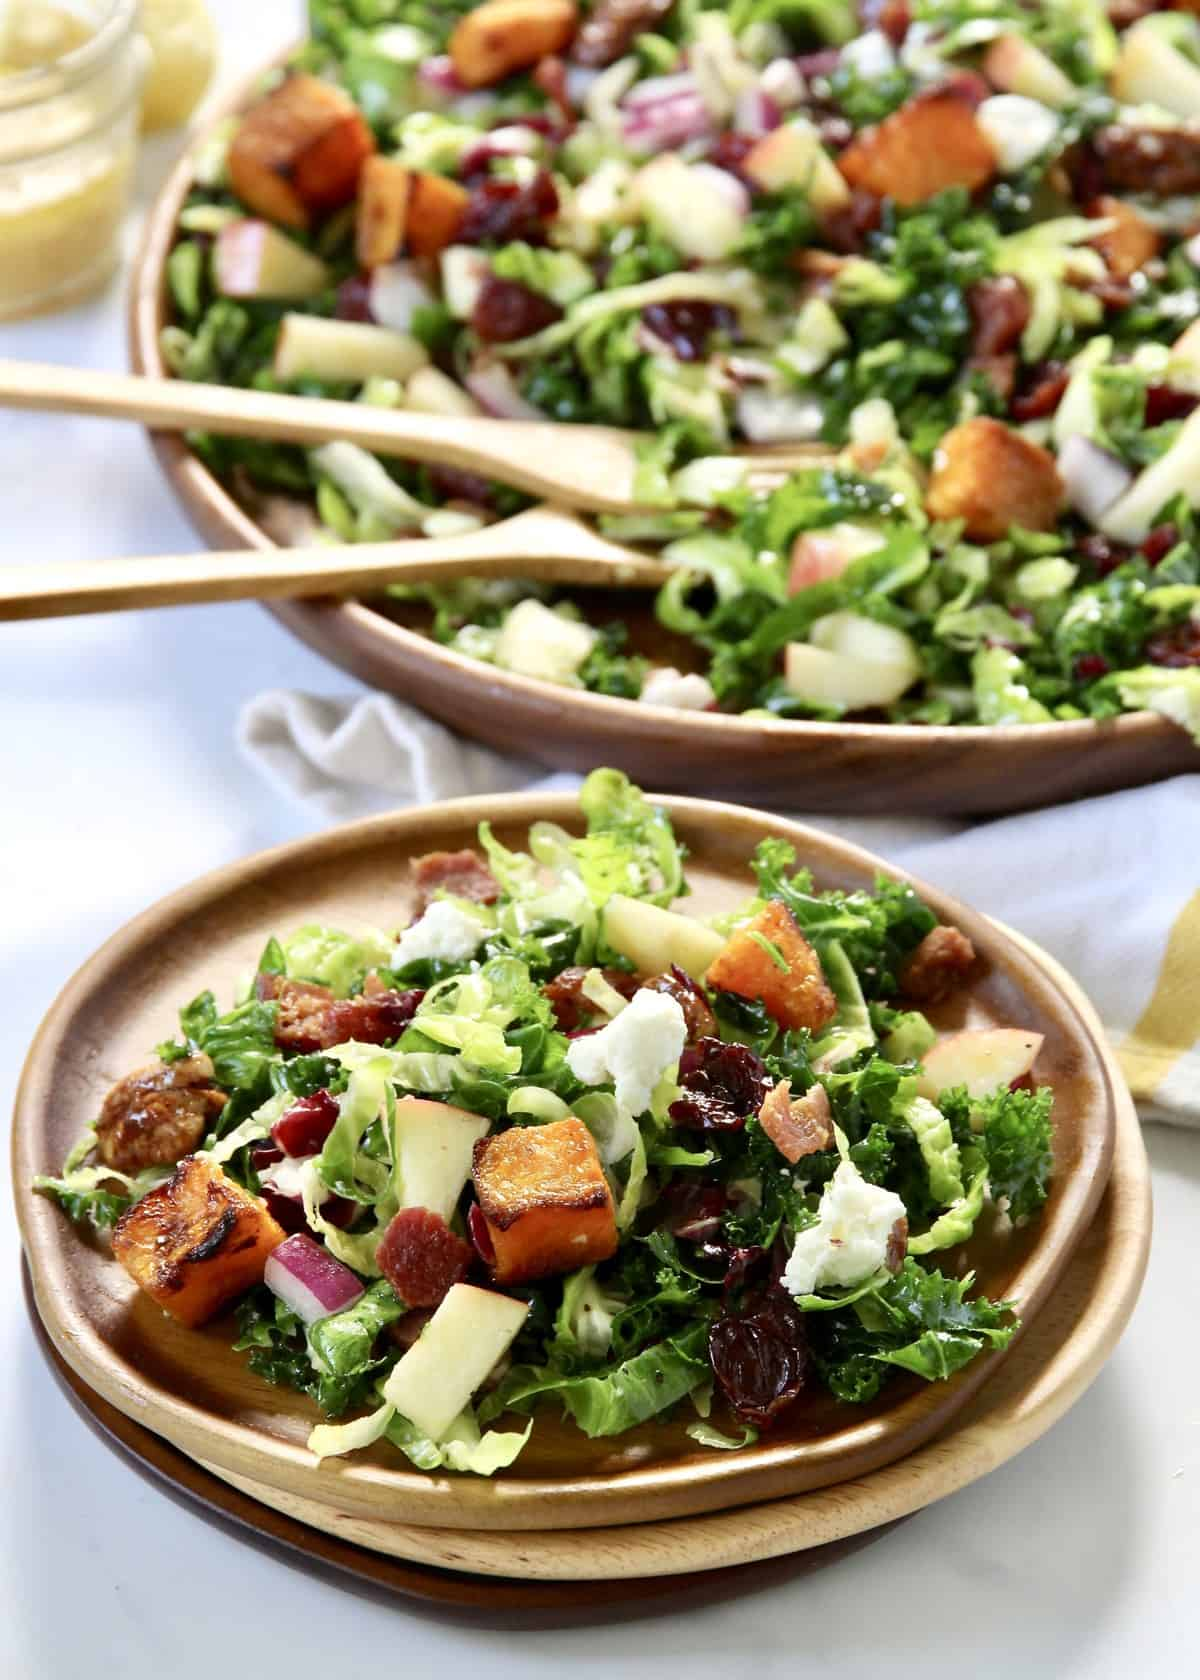 Kale and Brussels Sprouts Salad with a Maple Dijon Vinaigrette